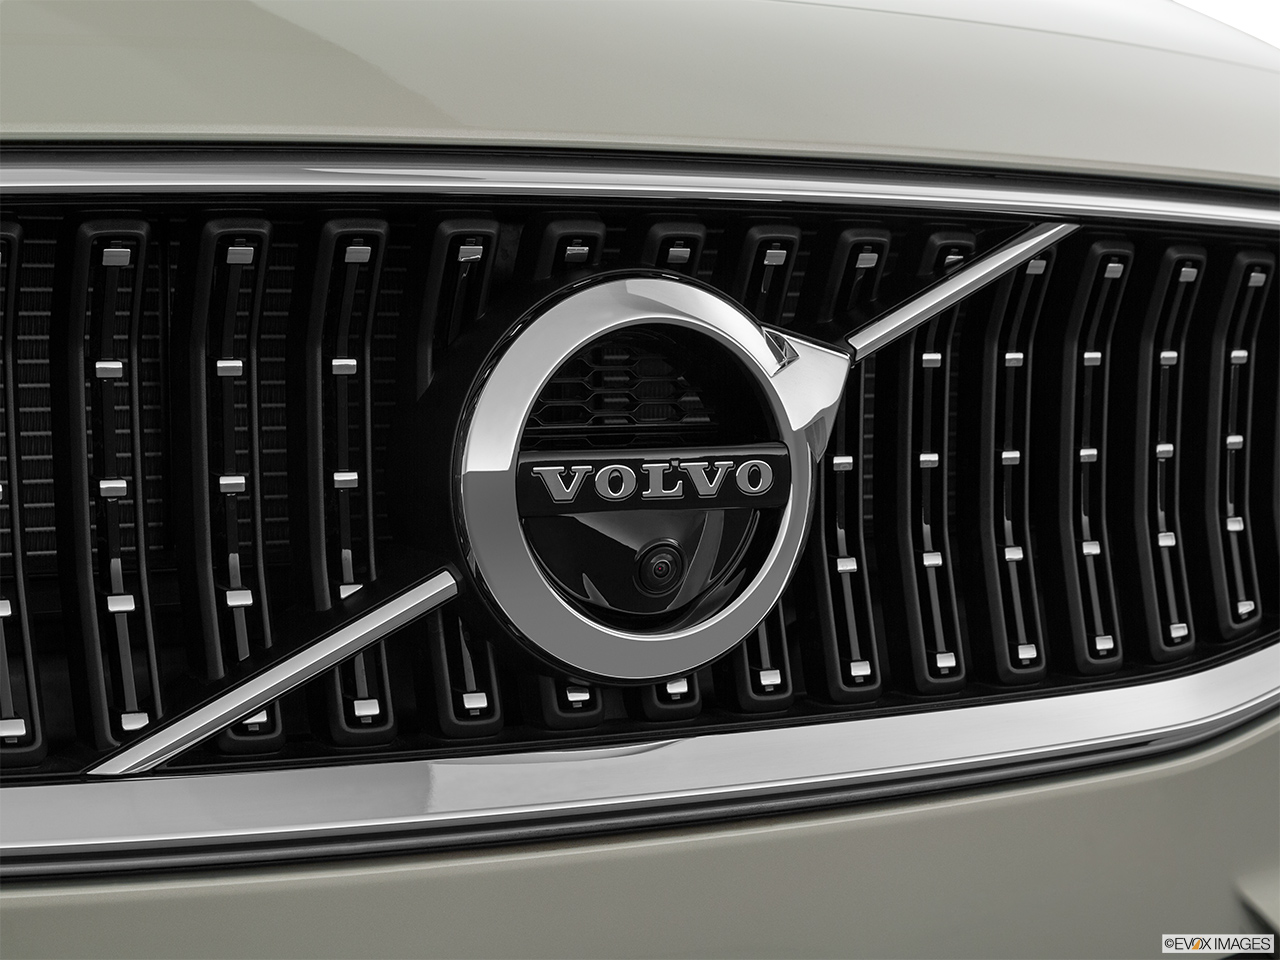 2020 Volvo V60 Cross Country T5 AWD Rear manufacture badge/emblem